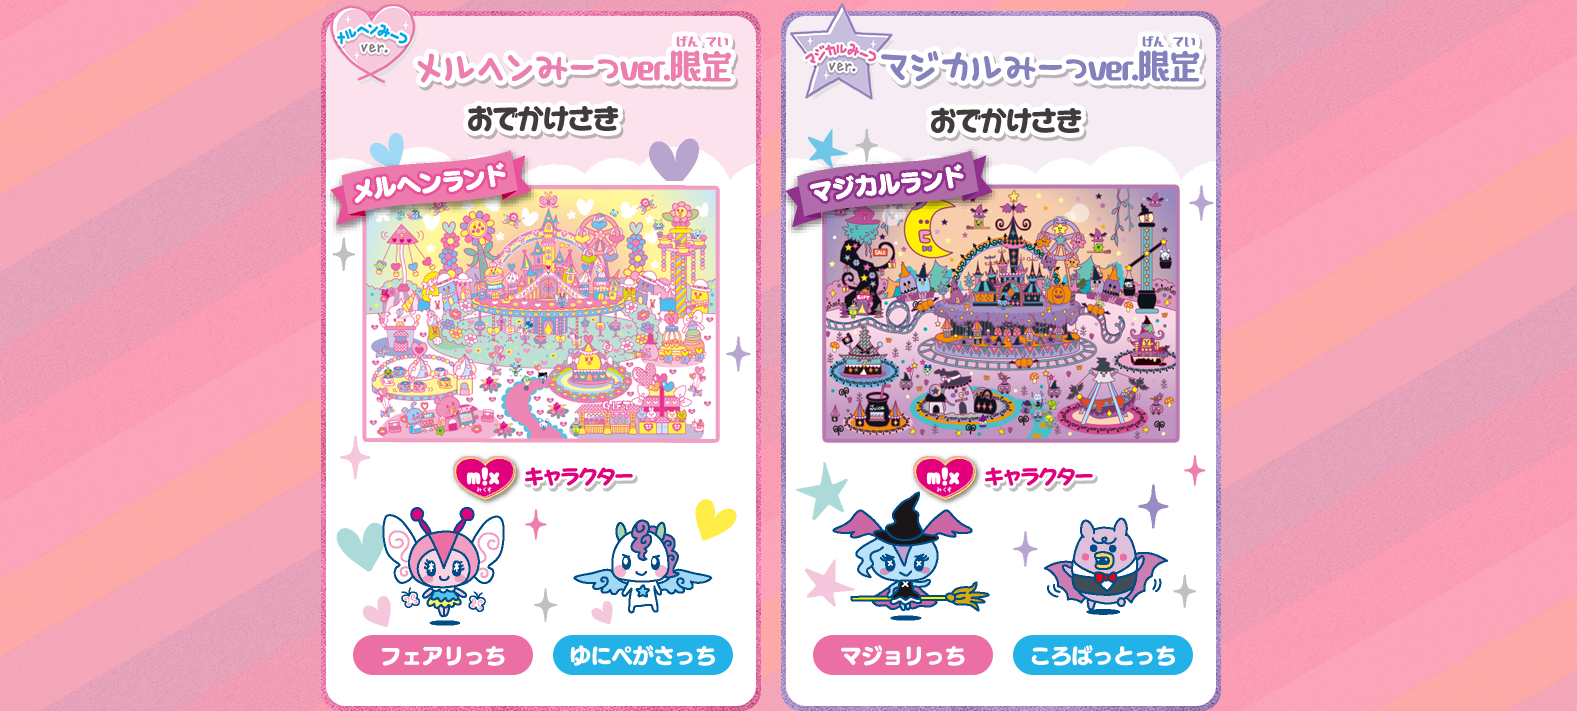 Tamagotchi Meets Fairy and Magical version differences